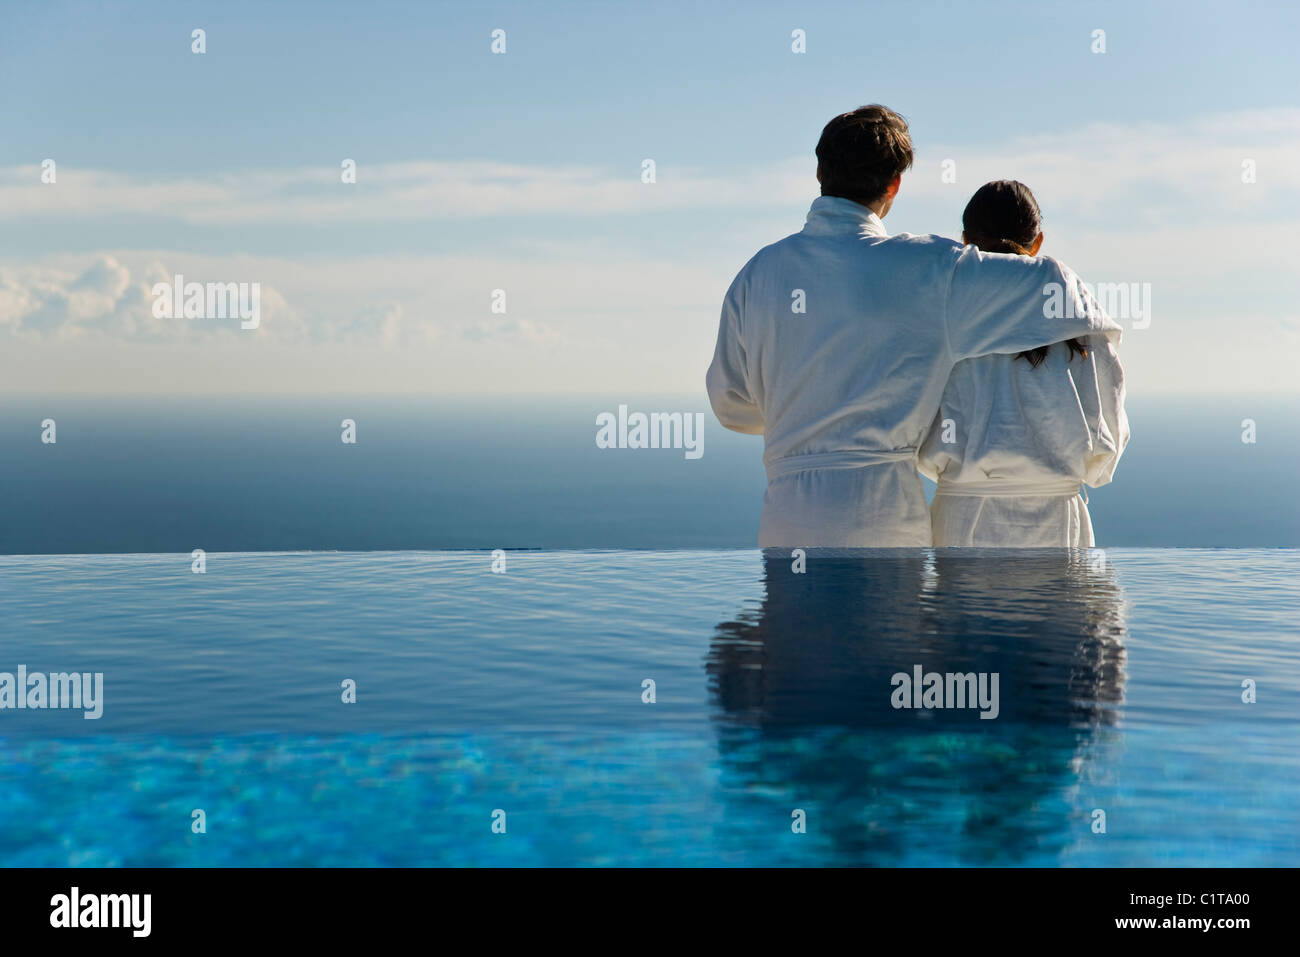 Couple standing at edge of infinity pool, looking at view - Stock Image